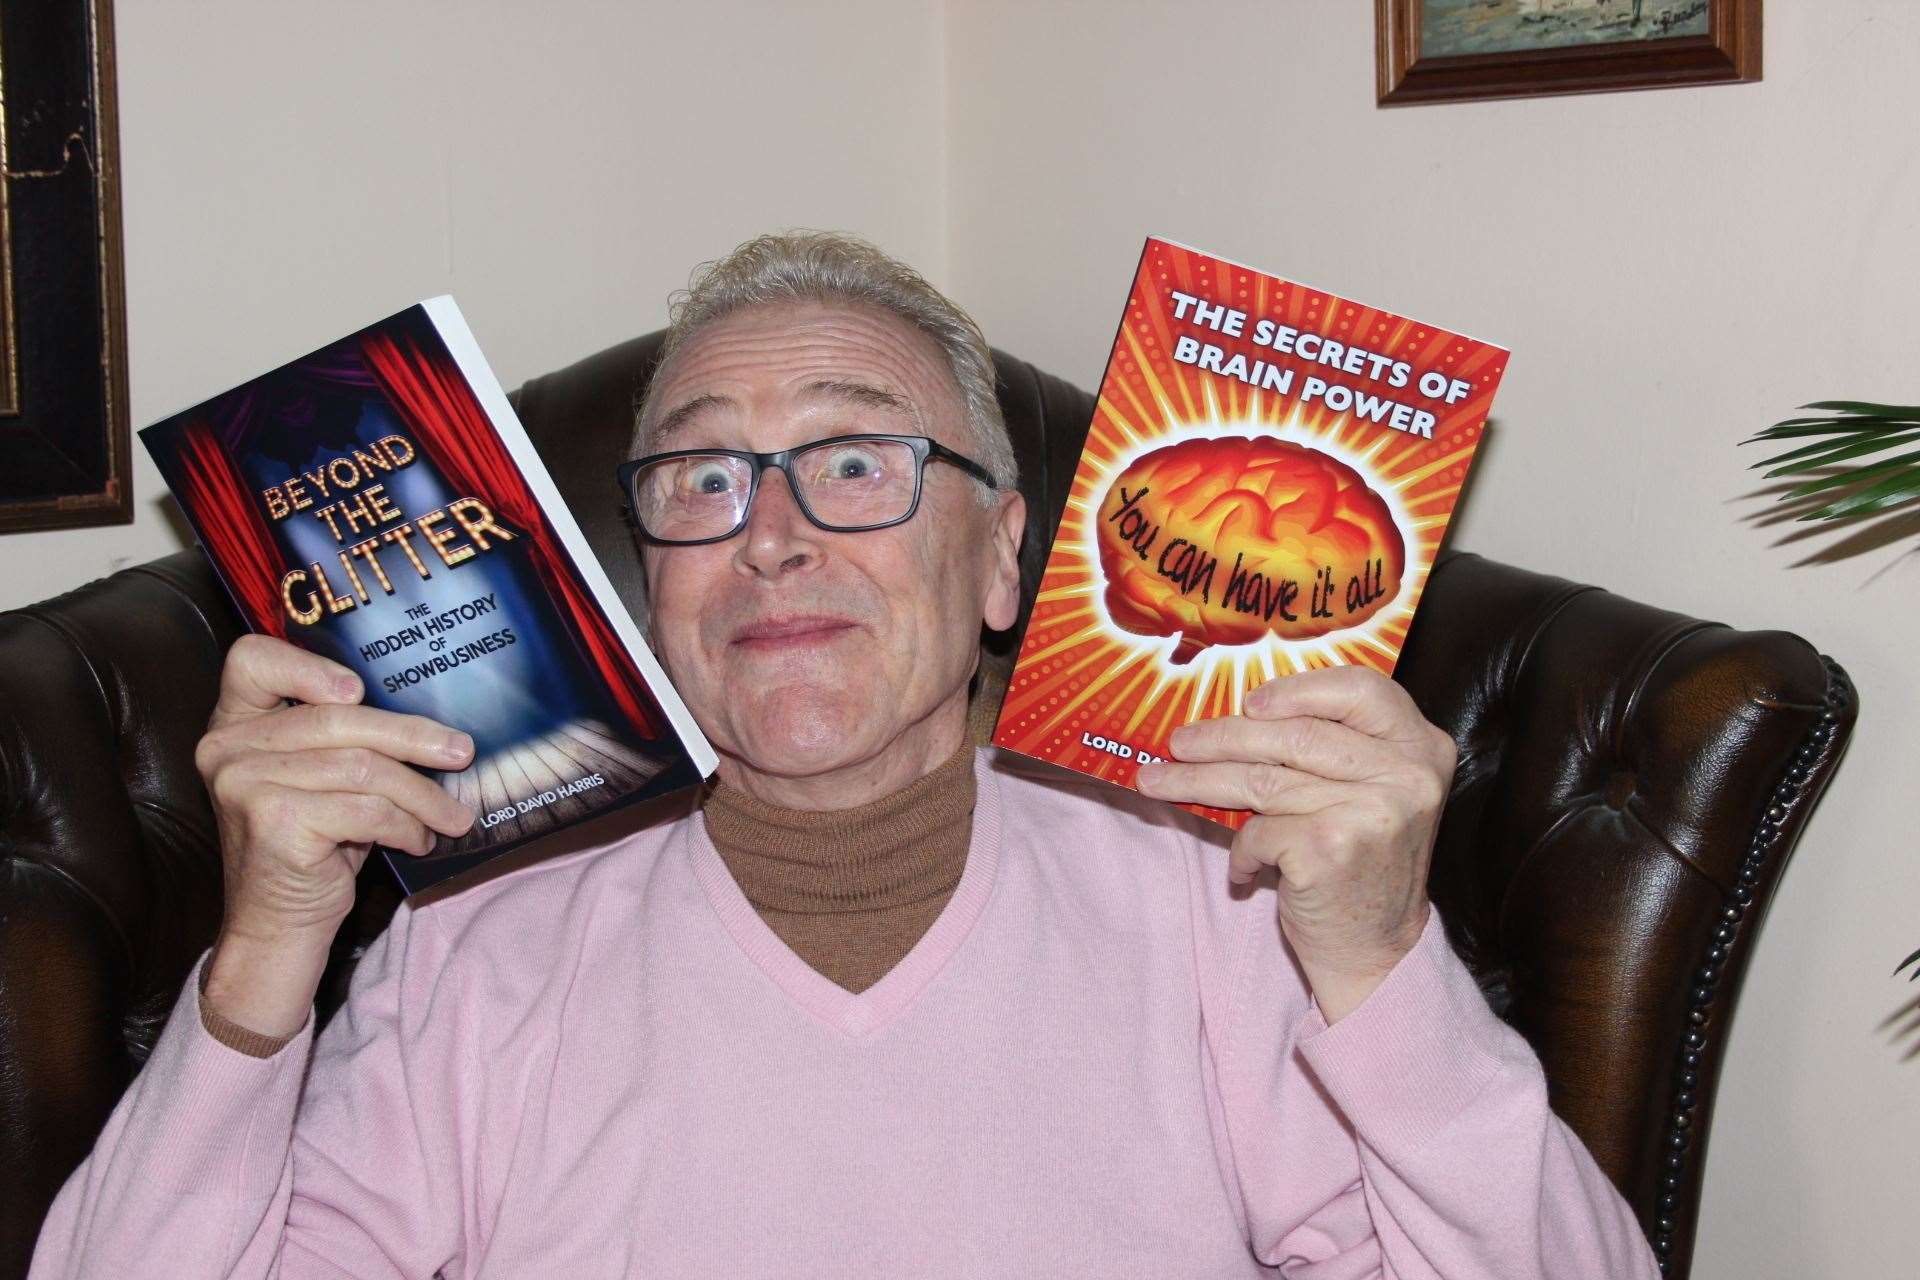 Comedian Paul Harris with his two books Beyond The Glitter and The Secrets of Brain Power at his home in Minster, Sheppey. Picture: John Nurden (20130336)